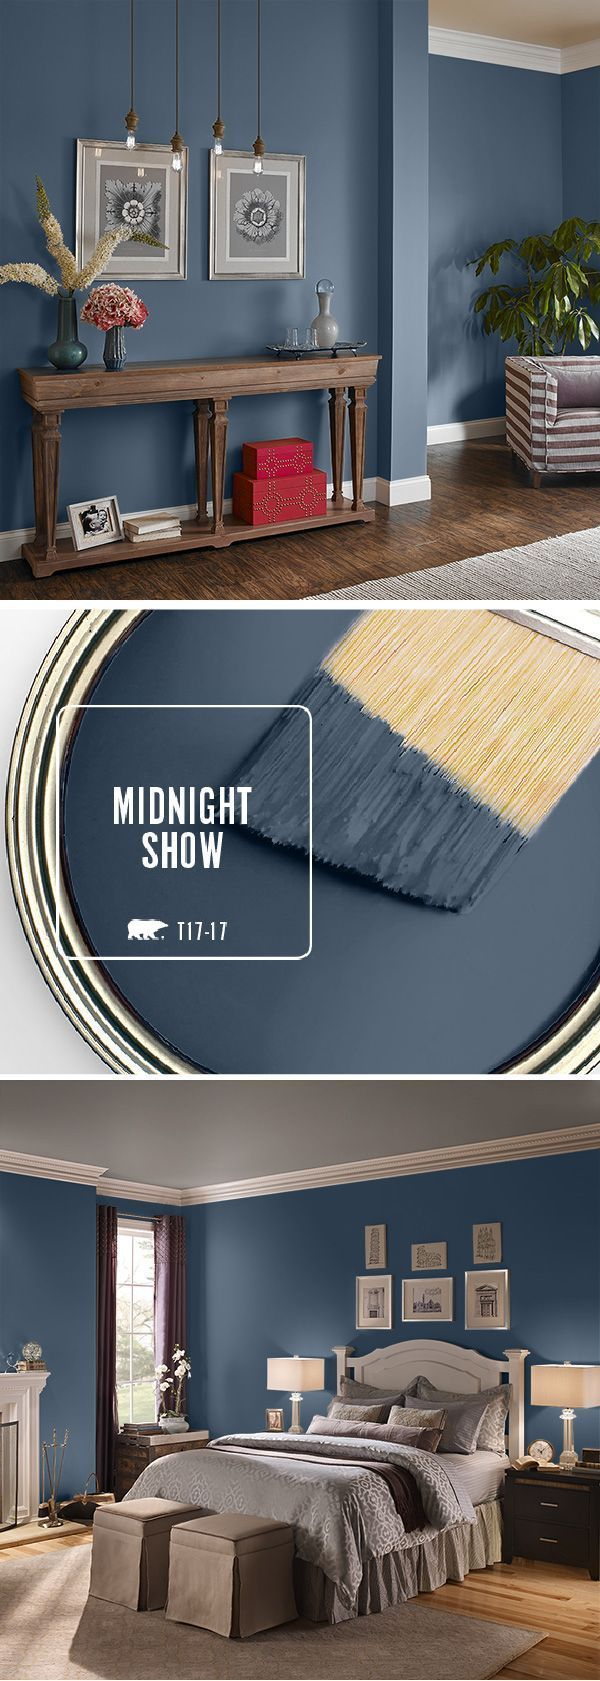 Color of the Month Midnight Show is part of  - With the holiday season behind us, it's time to focus inward and start the brand new year off with a fresh outlook on life  January brings with it a sense of mystical wonder, much like a view of the winter sky on a clear, crisp night  Behr Color Midnight Show T1717 evokes the intrigue of a starry …